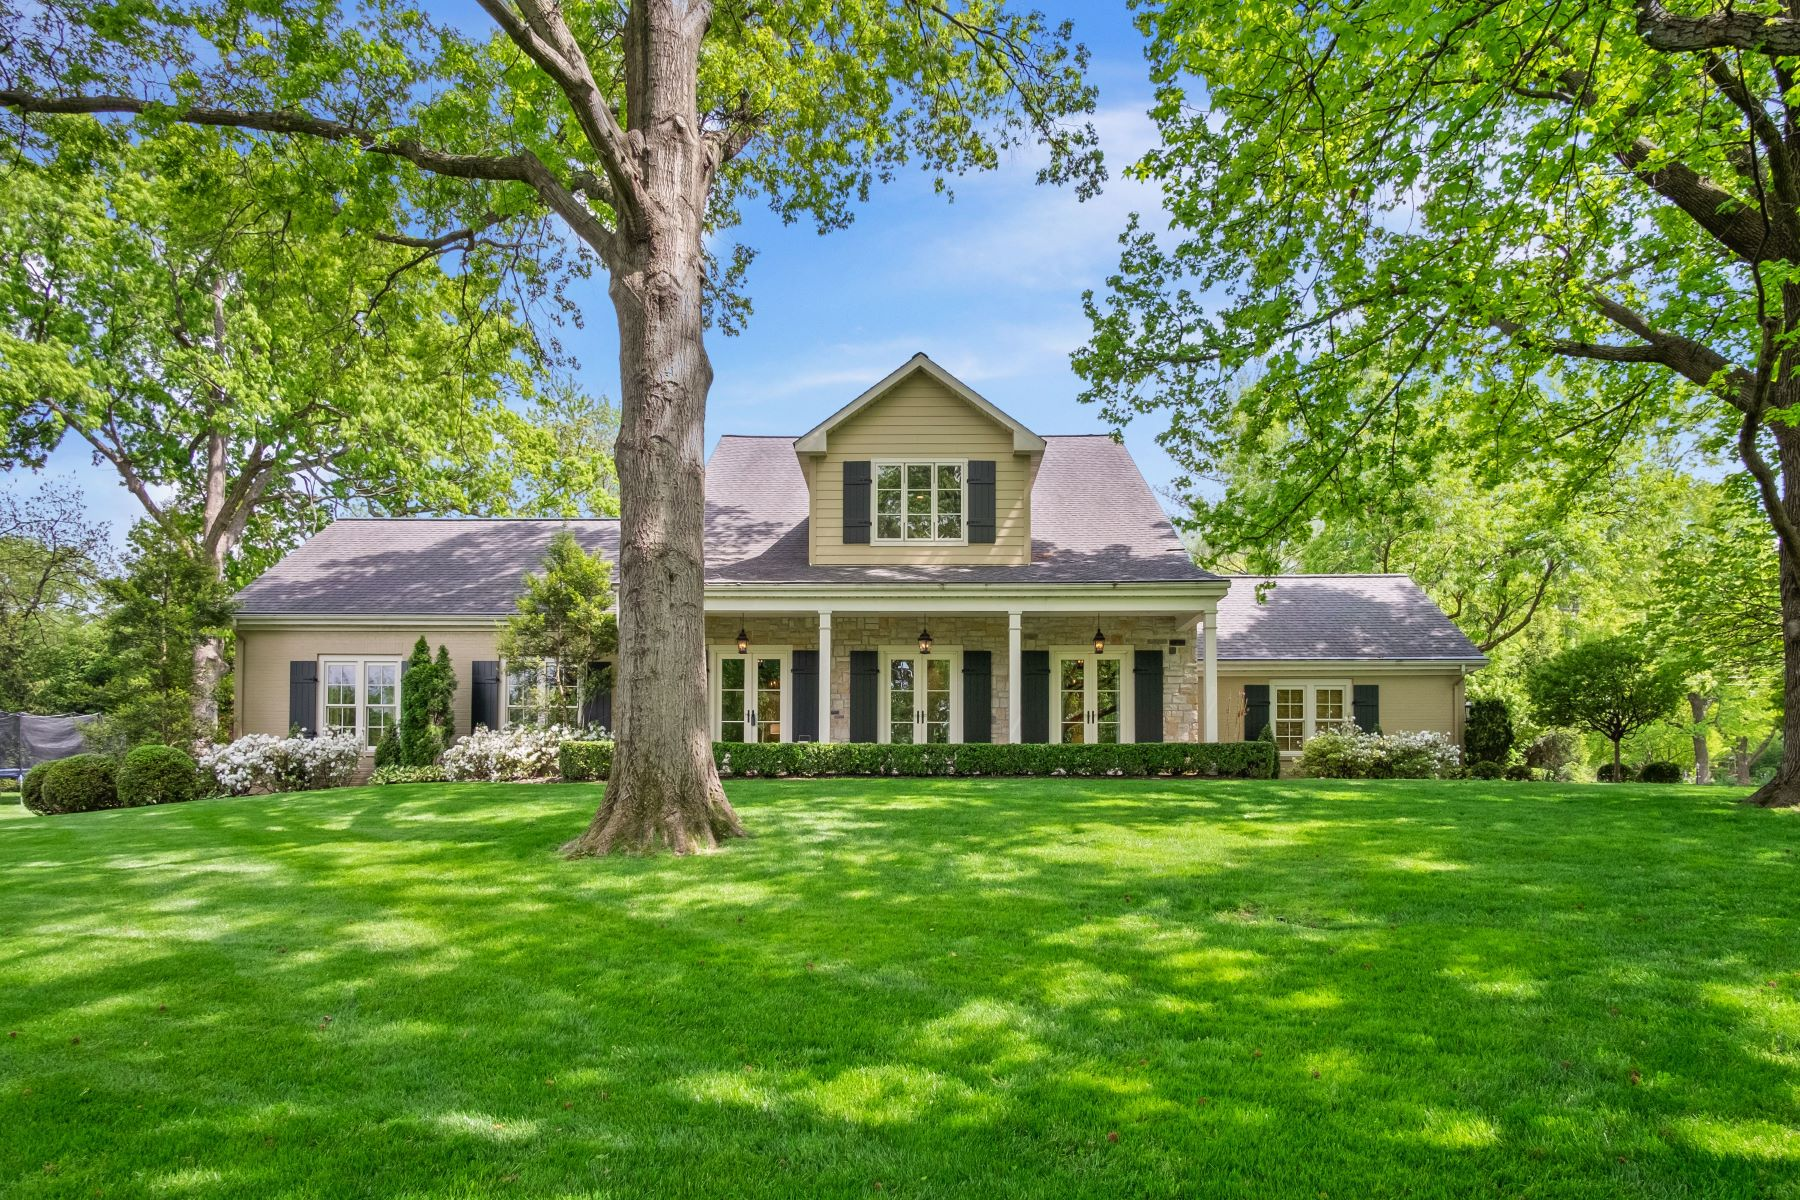 Property for Sale at Sophisticated Living in Ladue 10185 Springwood Drive Ladue, Missouri 63124 United States